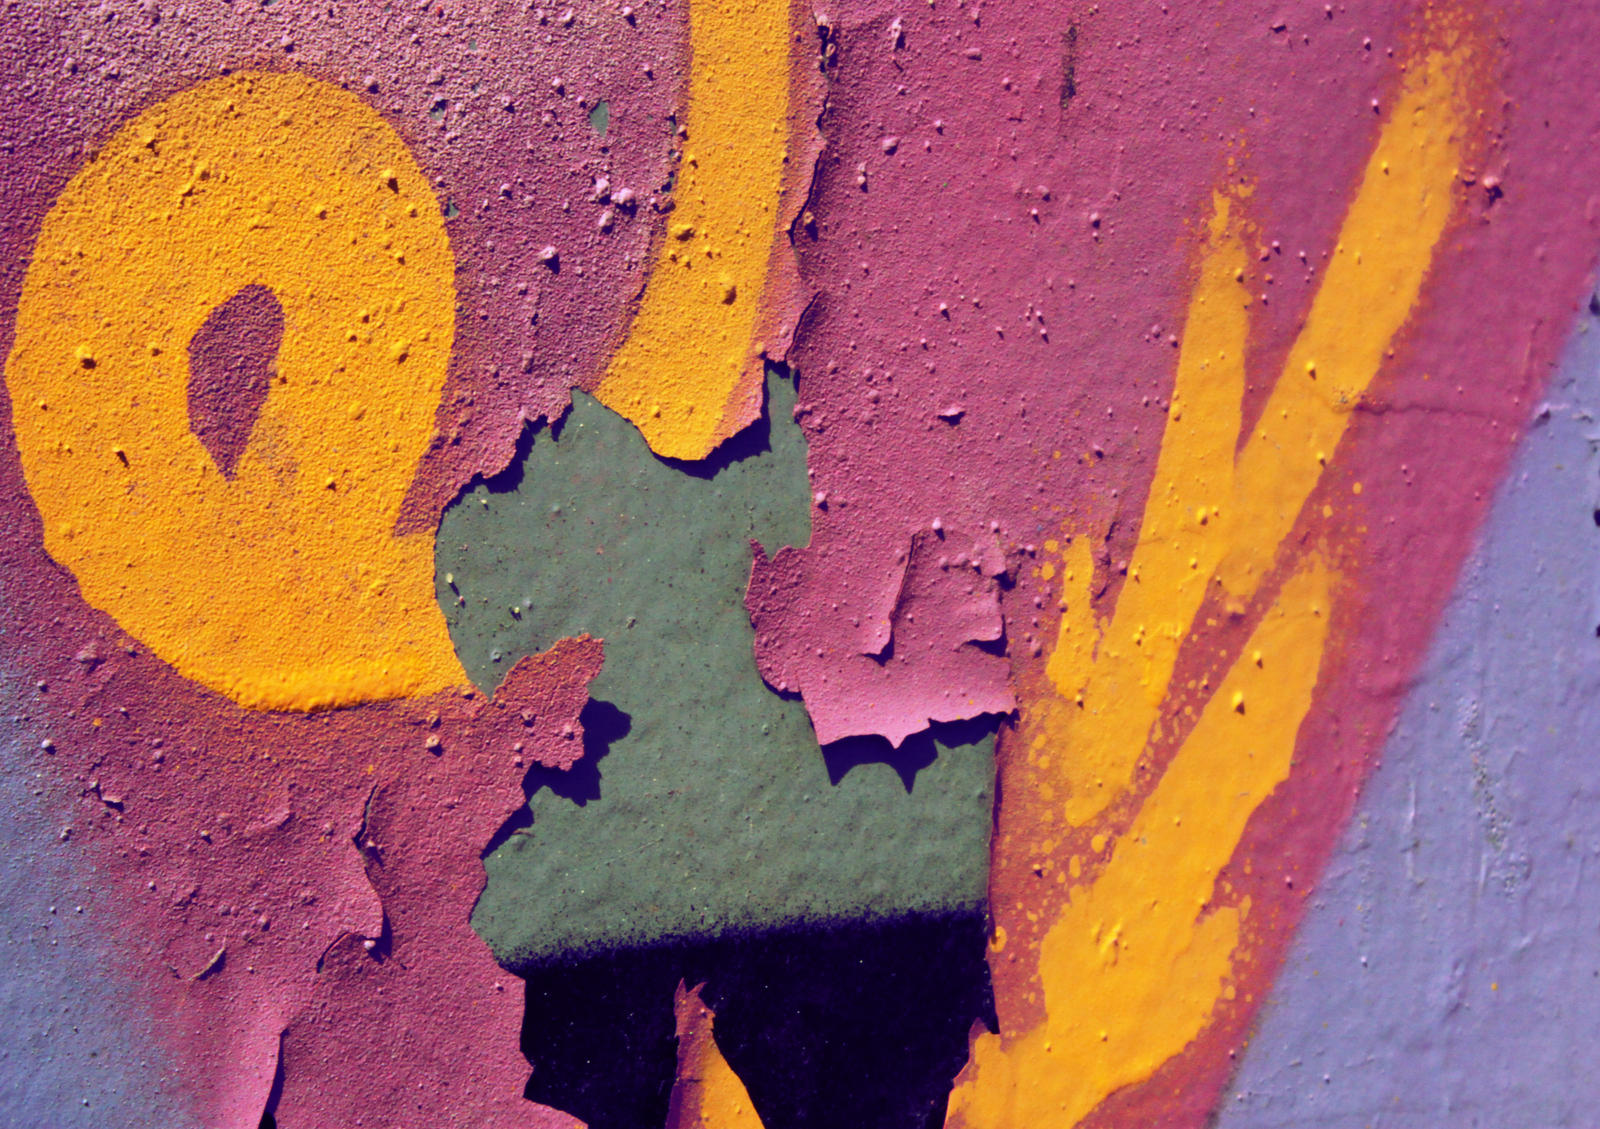 Graffiti texture 7 by IHaveSeenTheRain